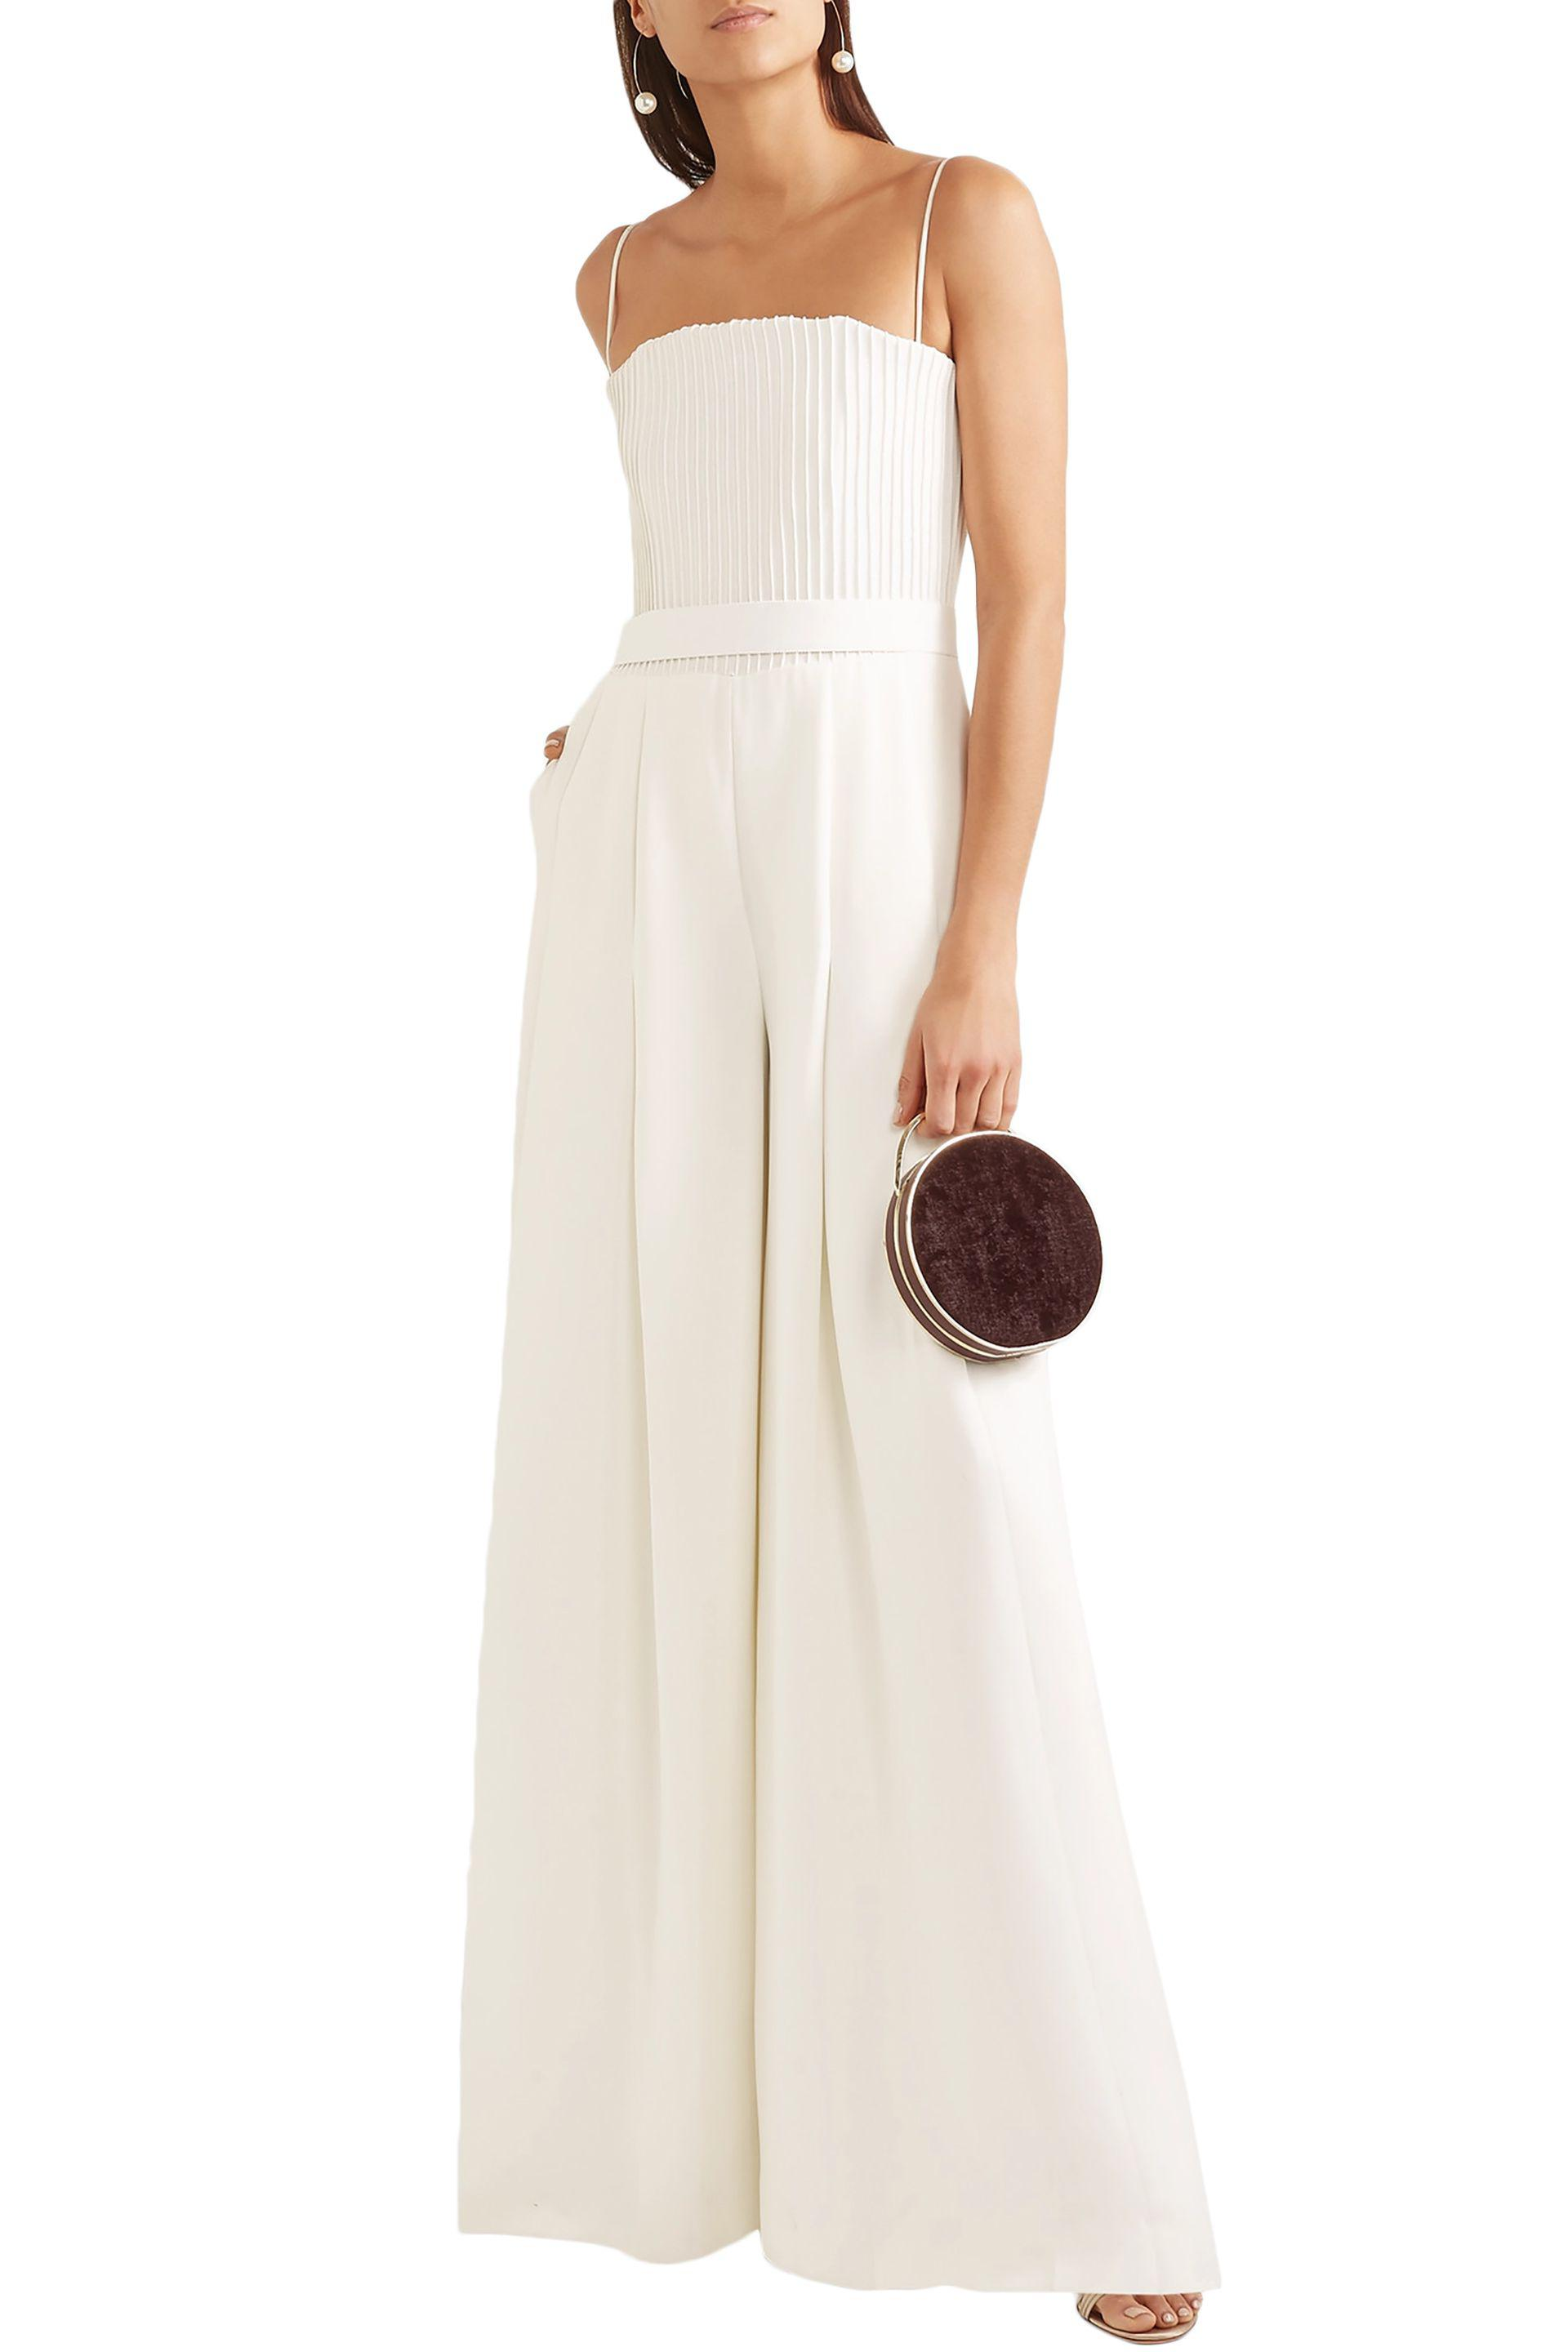 73be7459cde Brandon Maxwell - White Strapless Pintucked Crepe Jumpsuit - Lyst. View  fullscreen